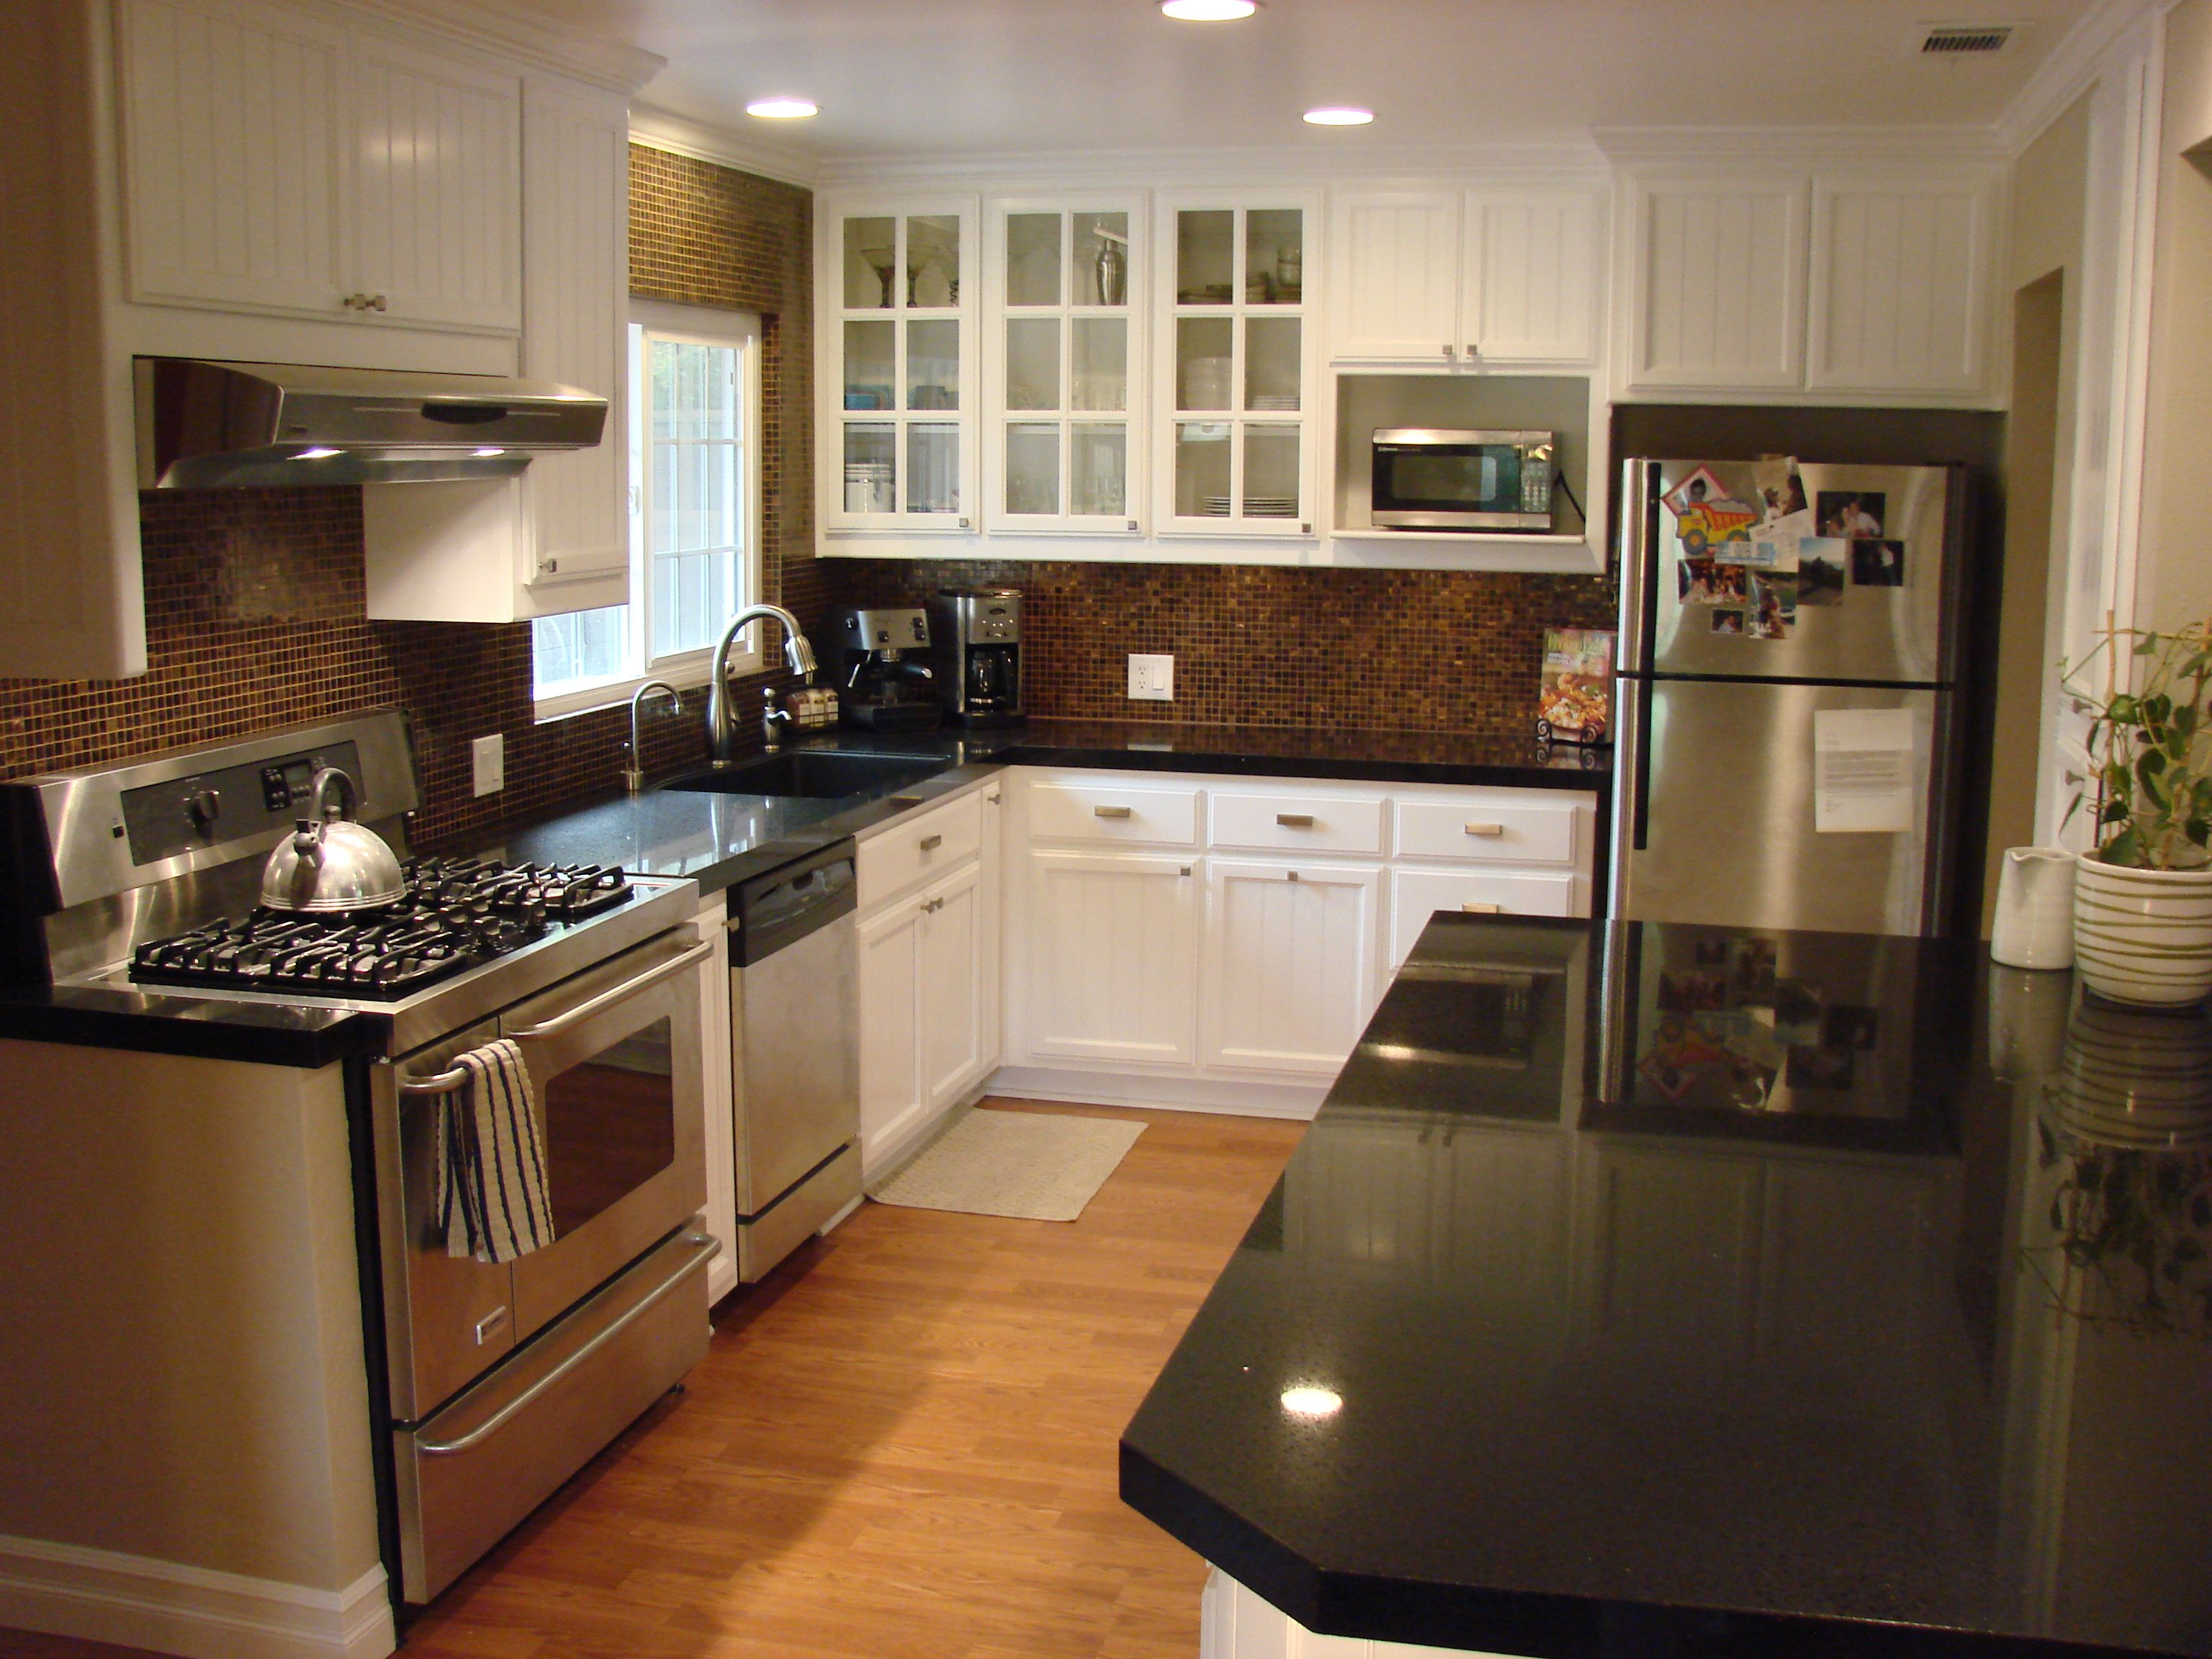 Kitchen Remodel Featuring New Granite Counter Tops And Mosaic